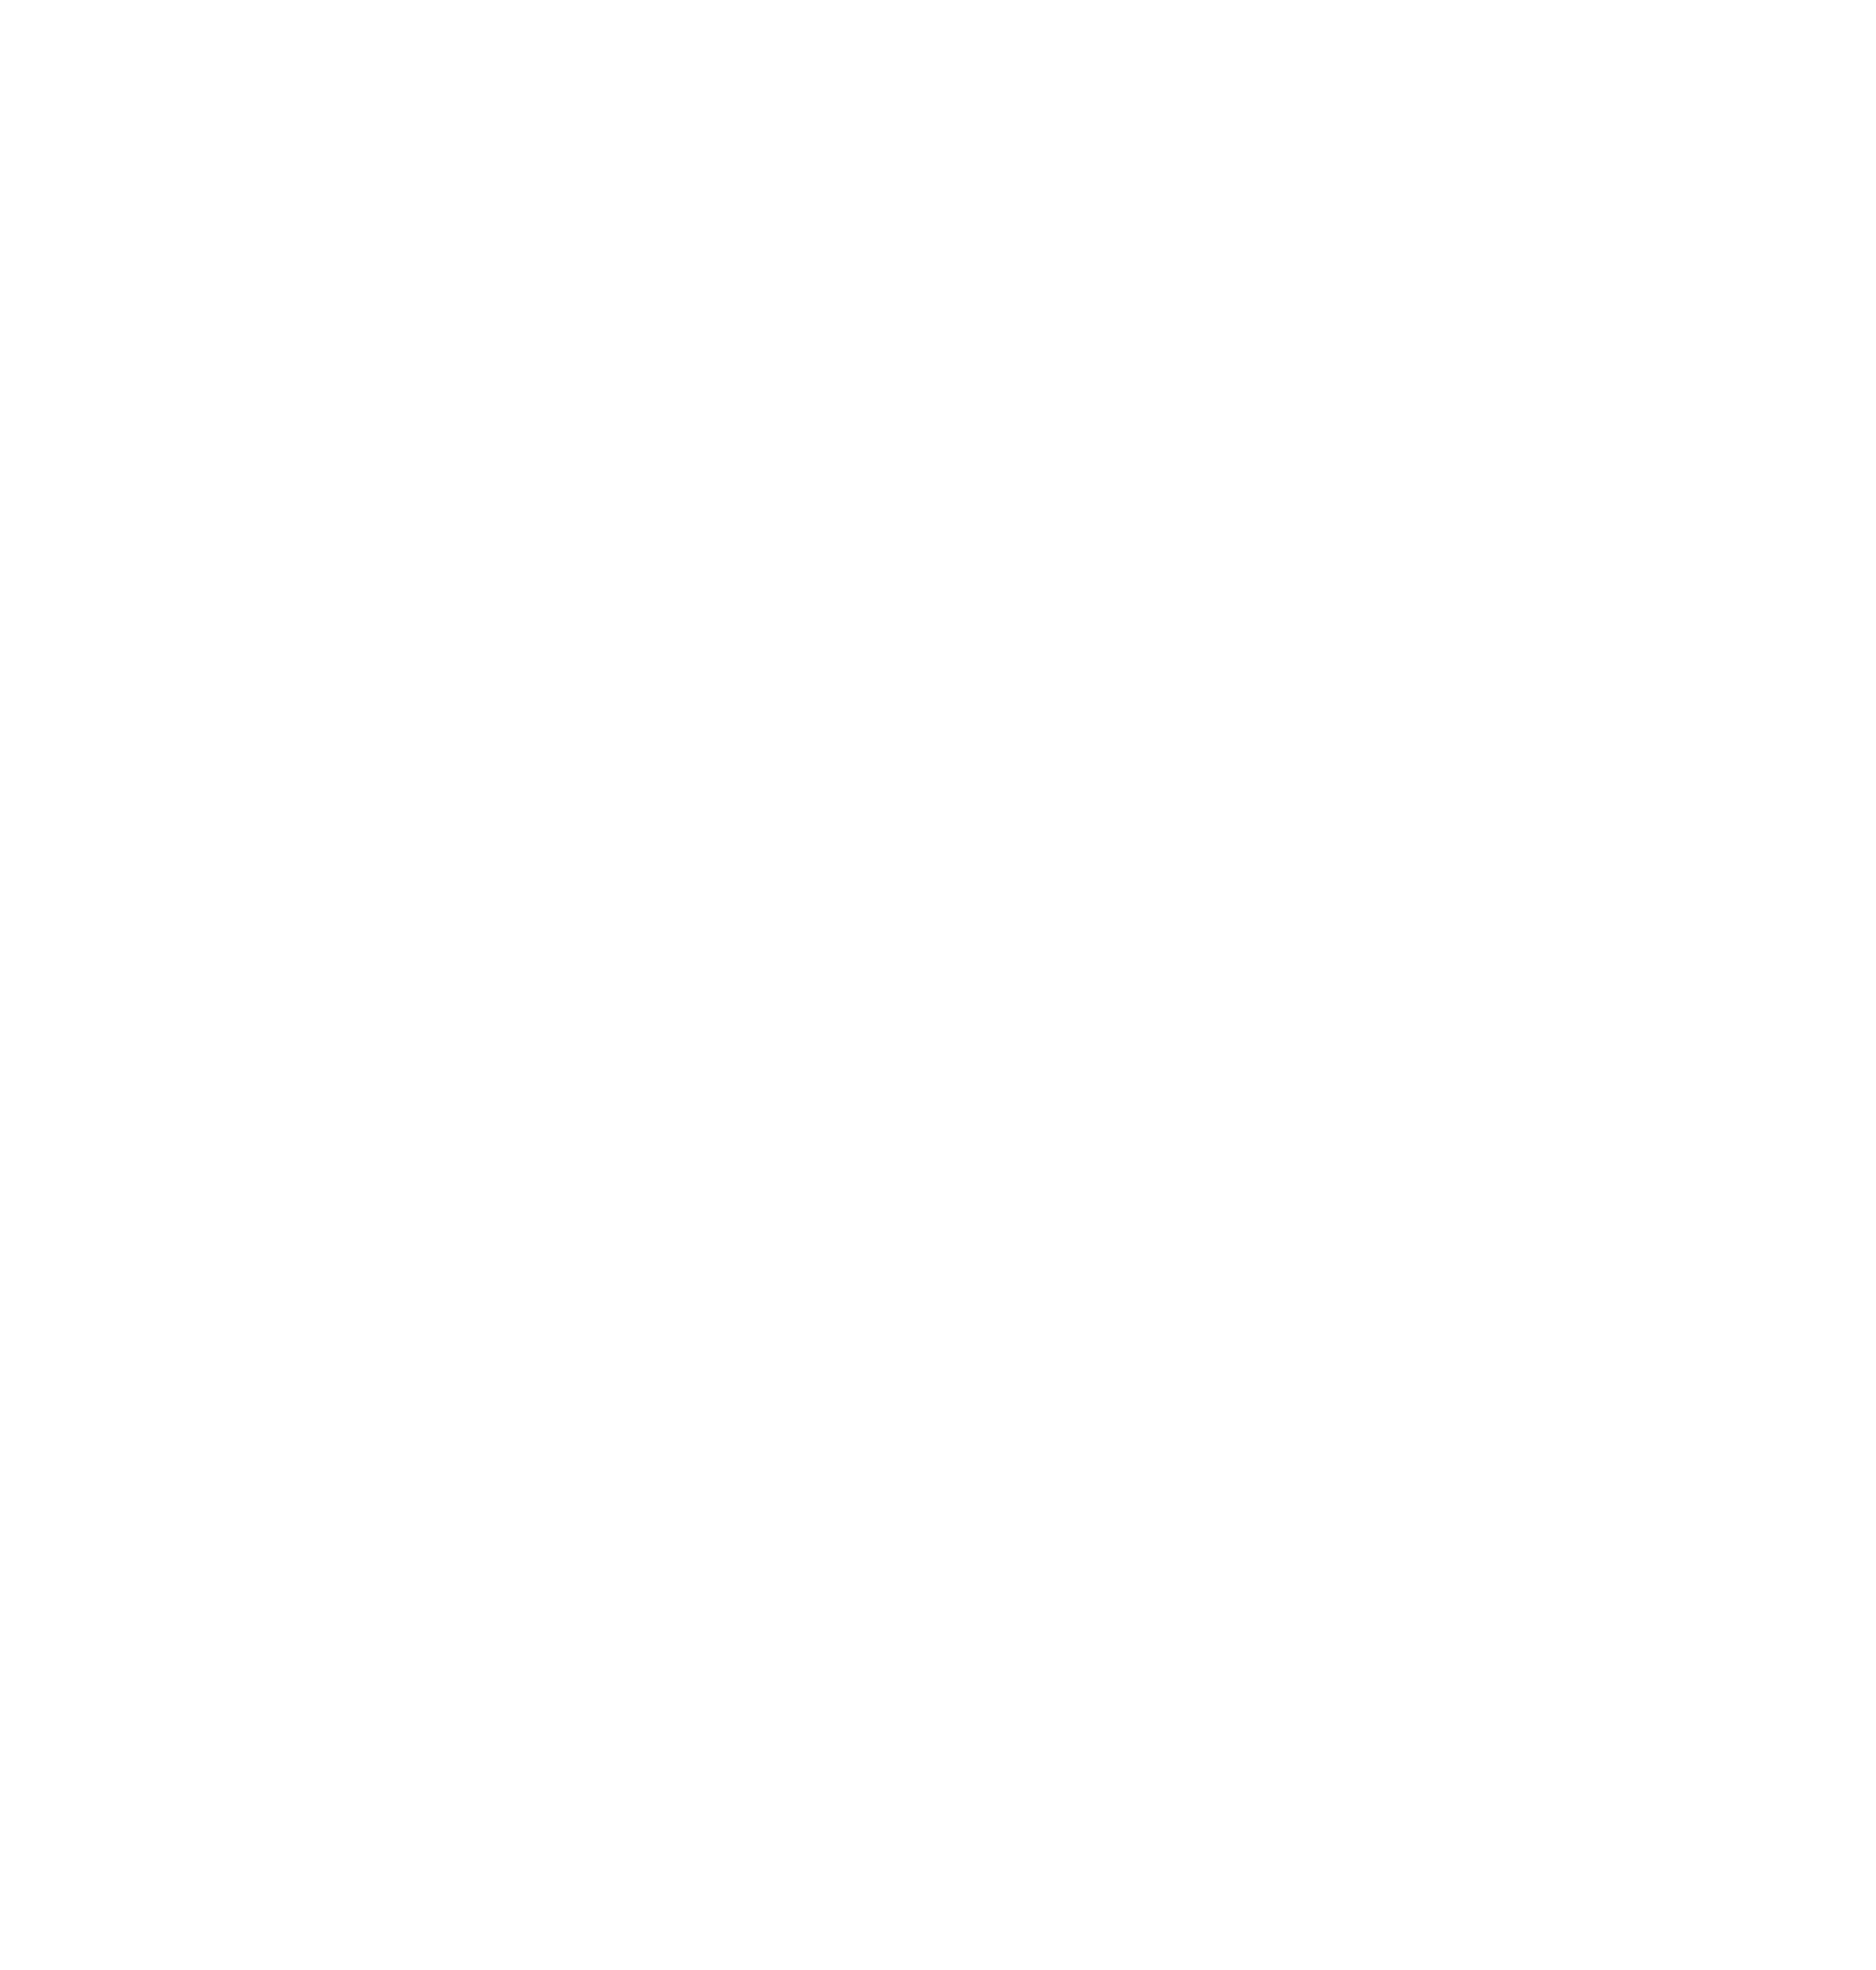 ask outdoors logo